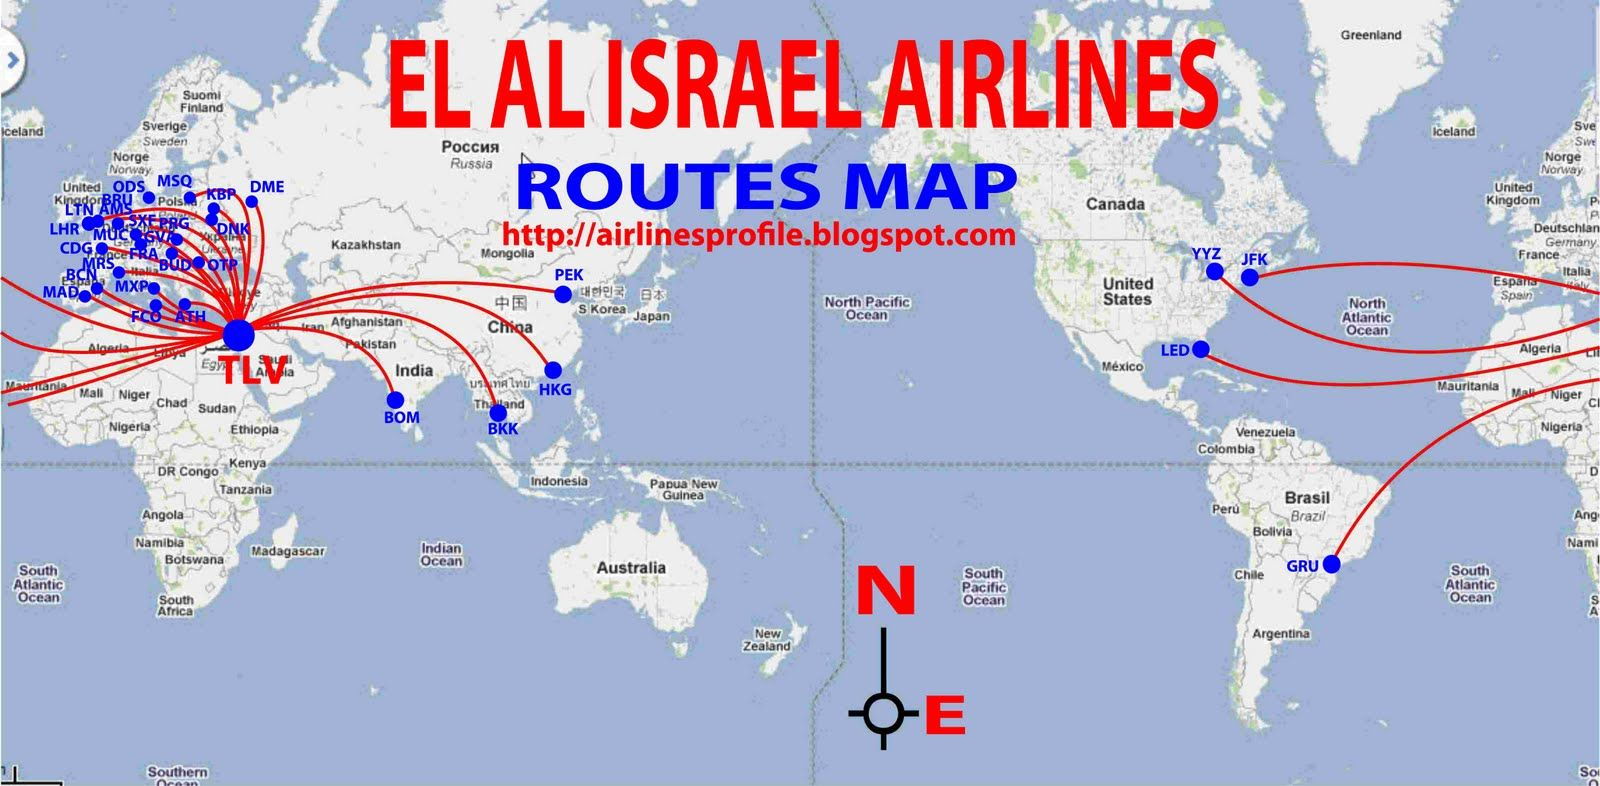 El Al Israel Airlines Routes Map Route map, Airlines, Route